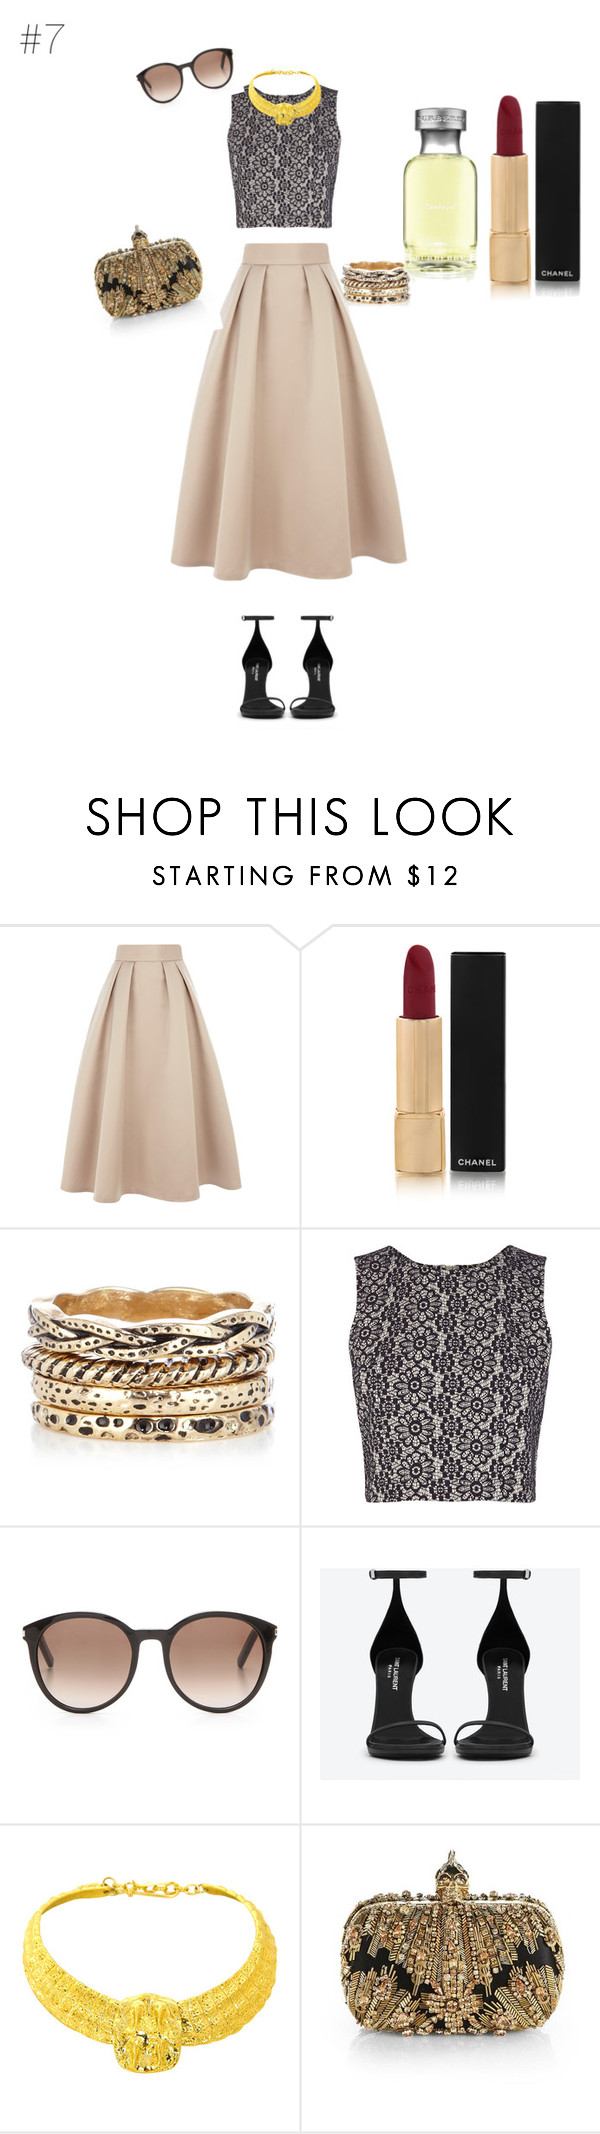 """Bonjour Principesa!"" by maries on Polyvore featuring Coast, Chanel, Warehouse, Yves Saint Laurent, Alexander McQueen and Burberry"